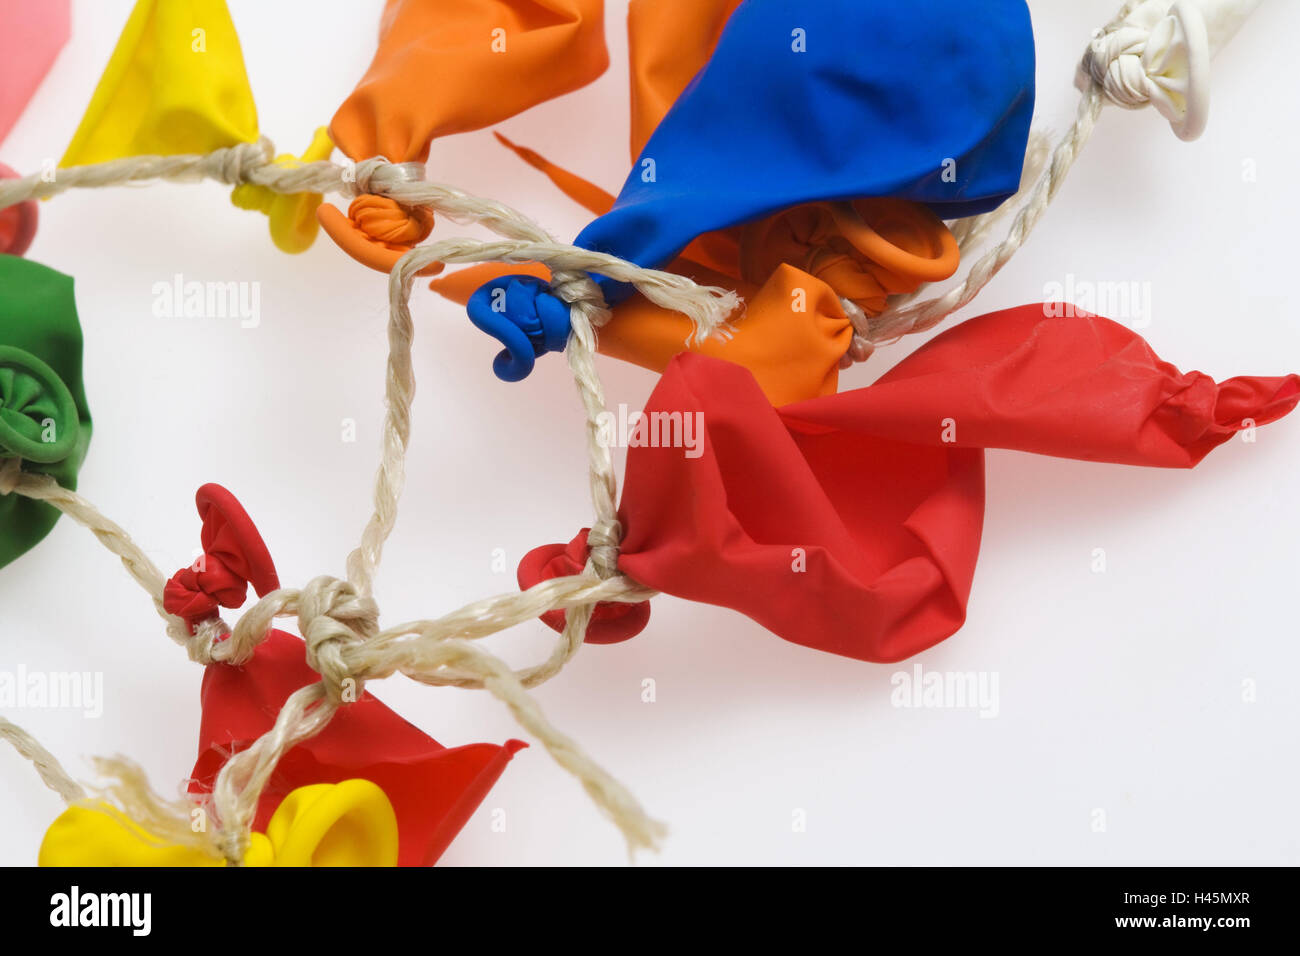 Balloons, bursts, cable, detail, studio, cut out, burst, balloons, play, colours, brightly, broken, children's - Stock Image